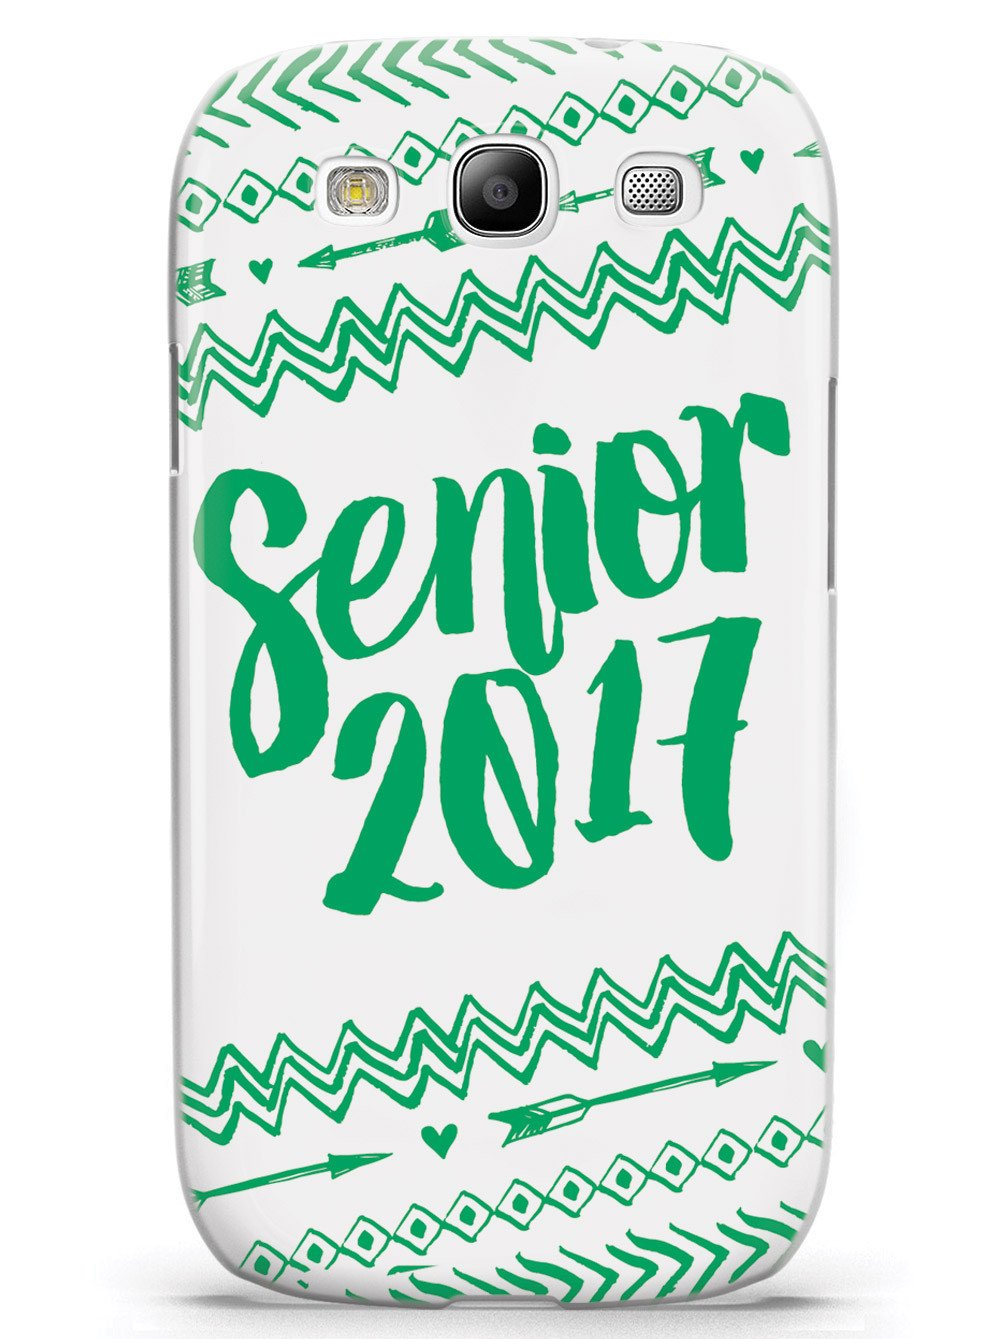 Senior 2017 - Green Case - pipercleo.com